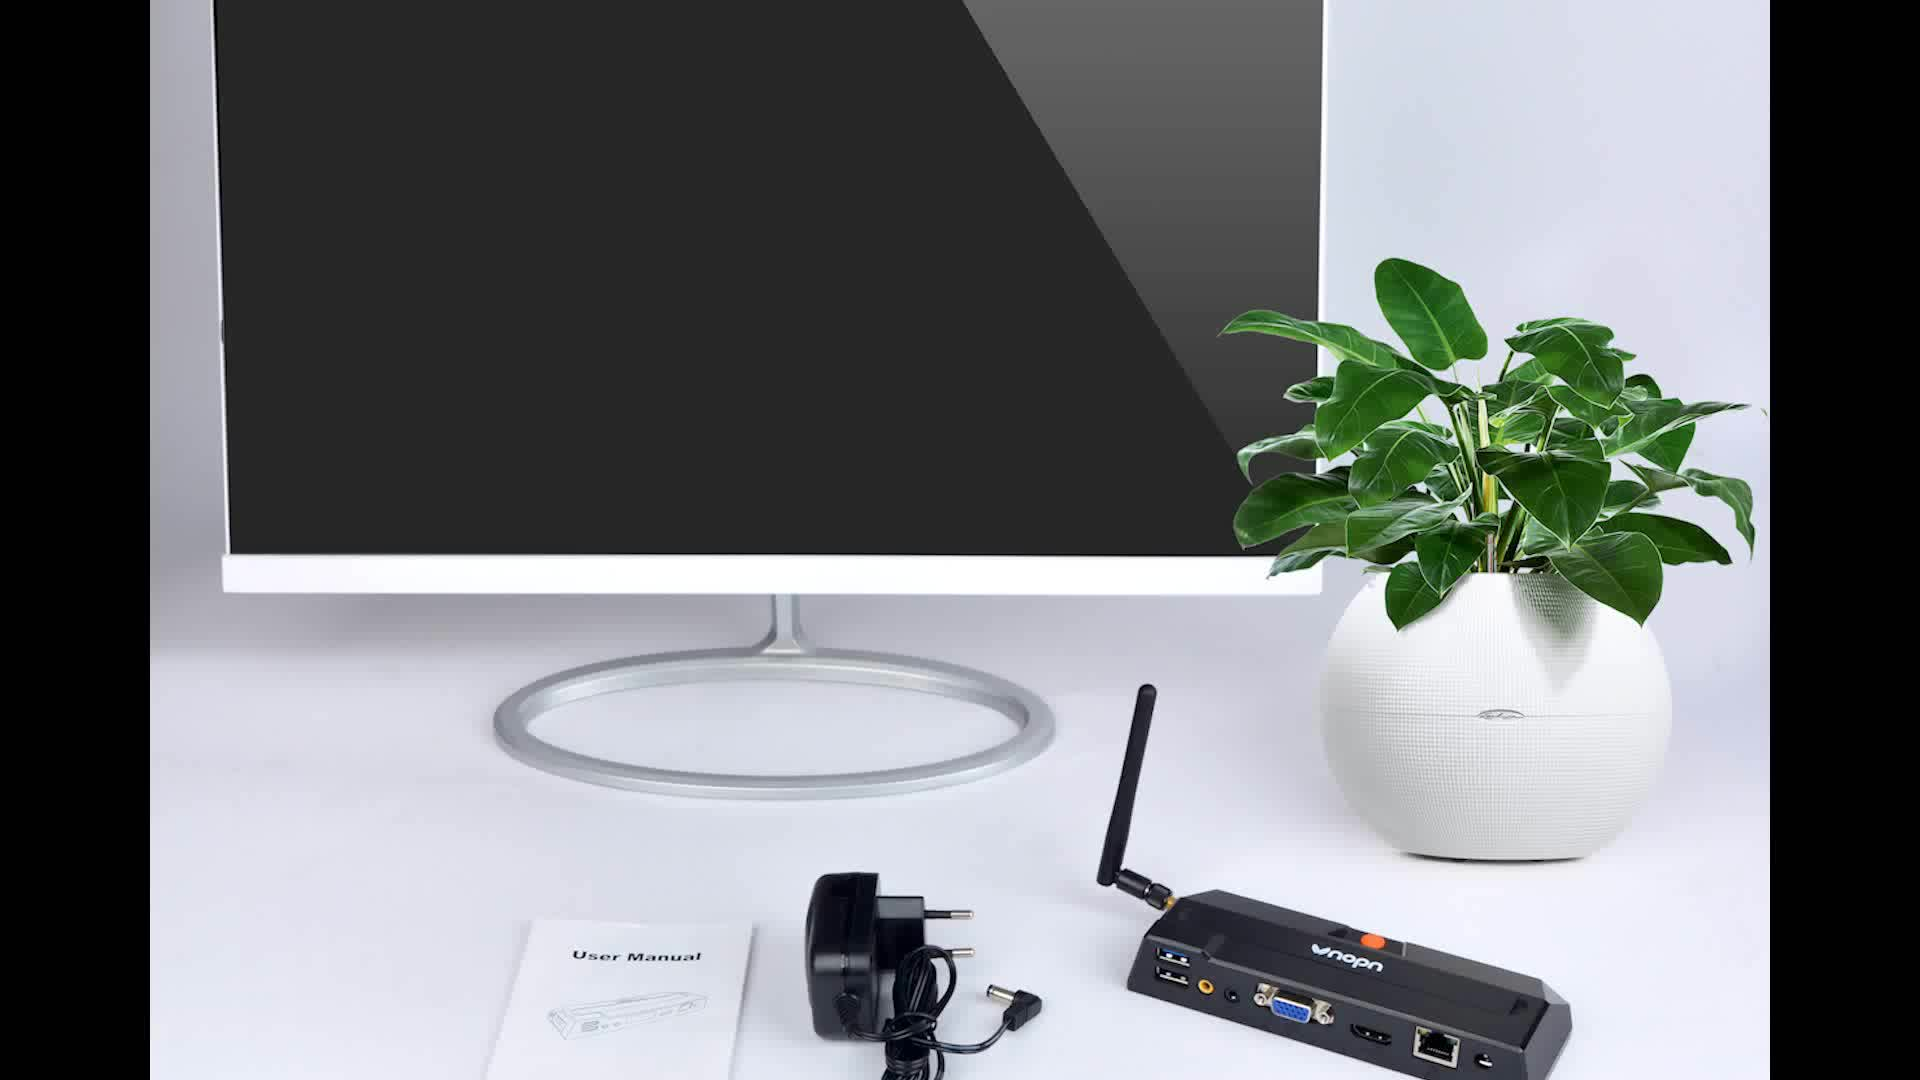 cheap mini pc station thin client for digital signage school office internet cafe thin client